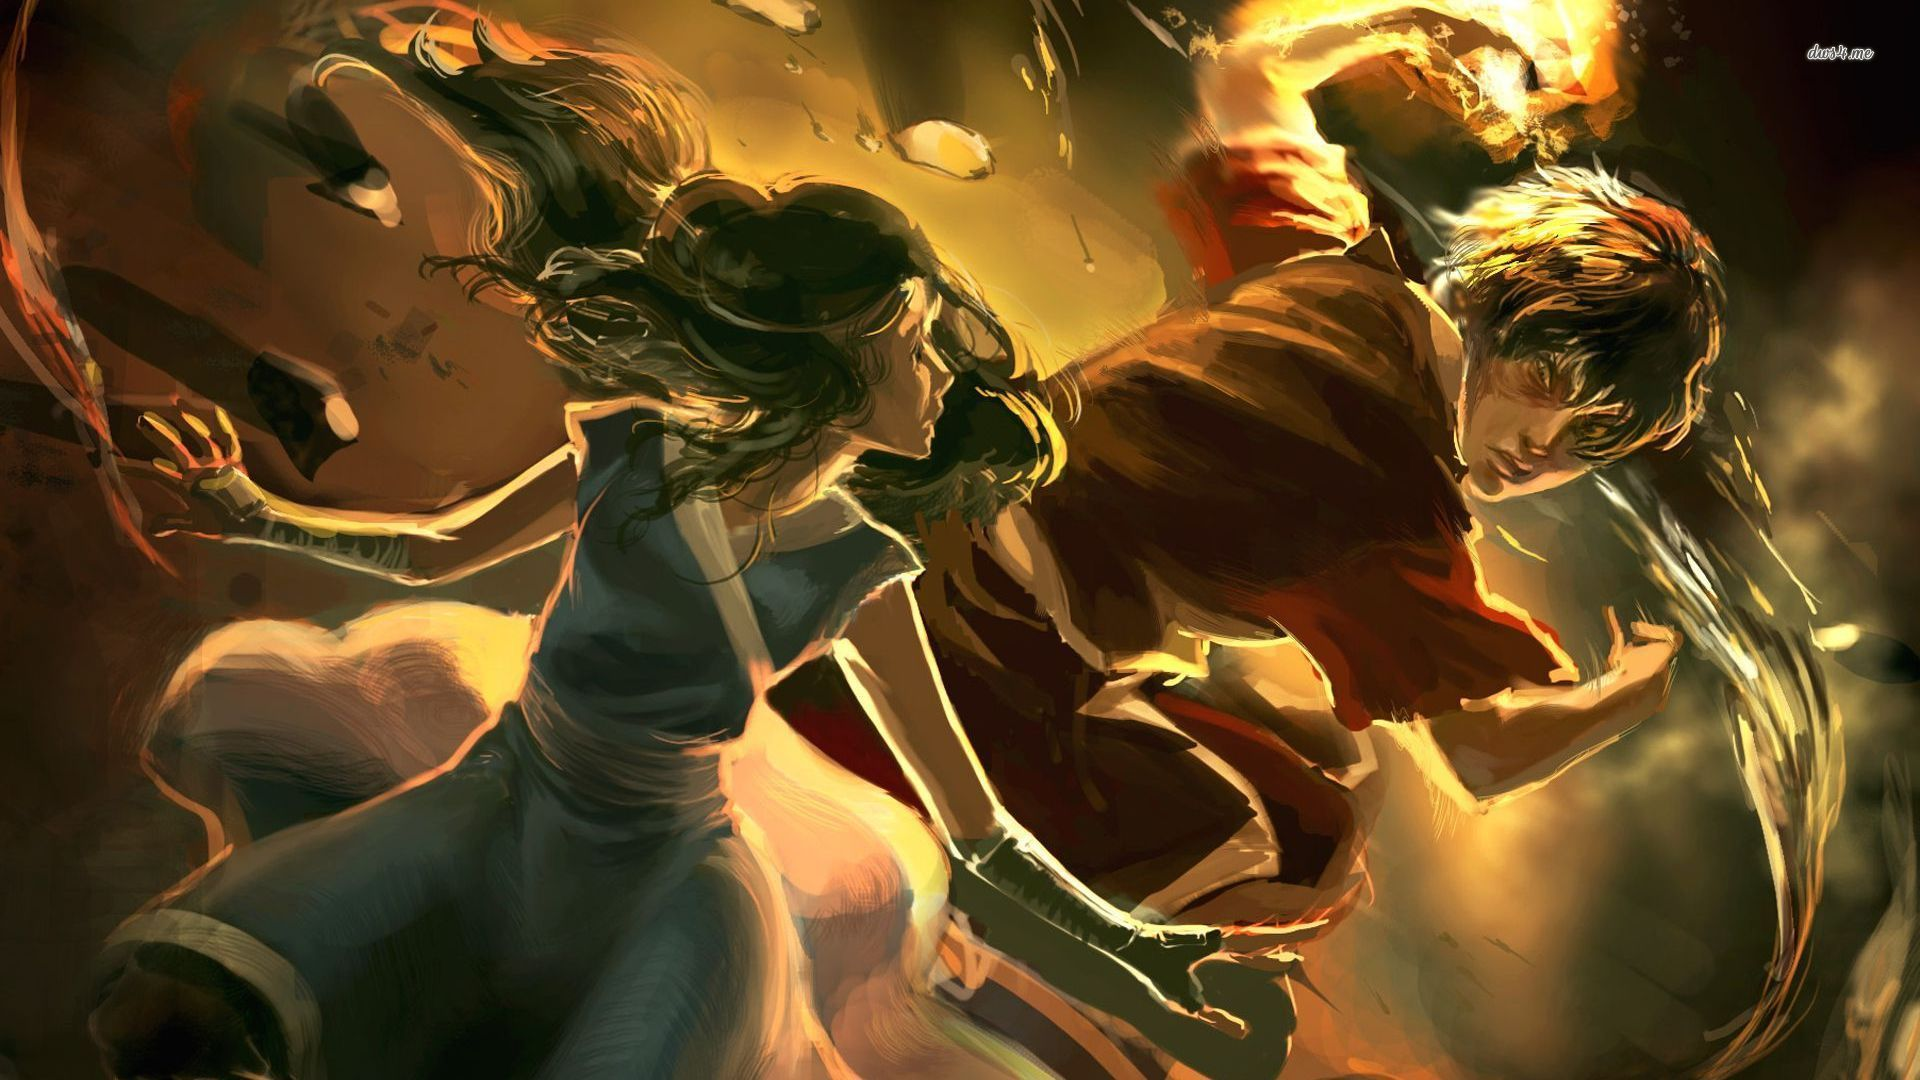 Avatar The Last Airbender Wallpaper 4k Posted By Ethan Thompson